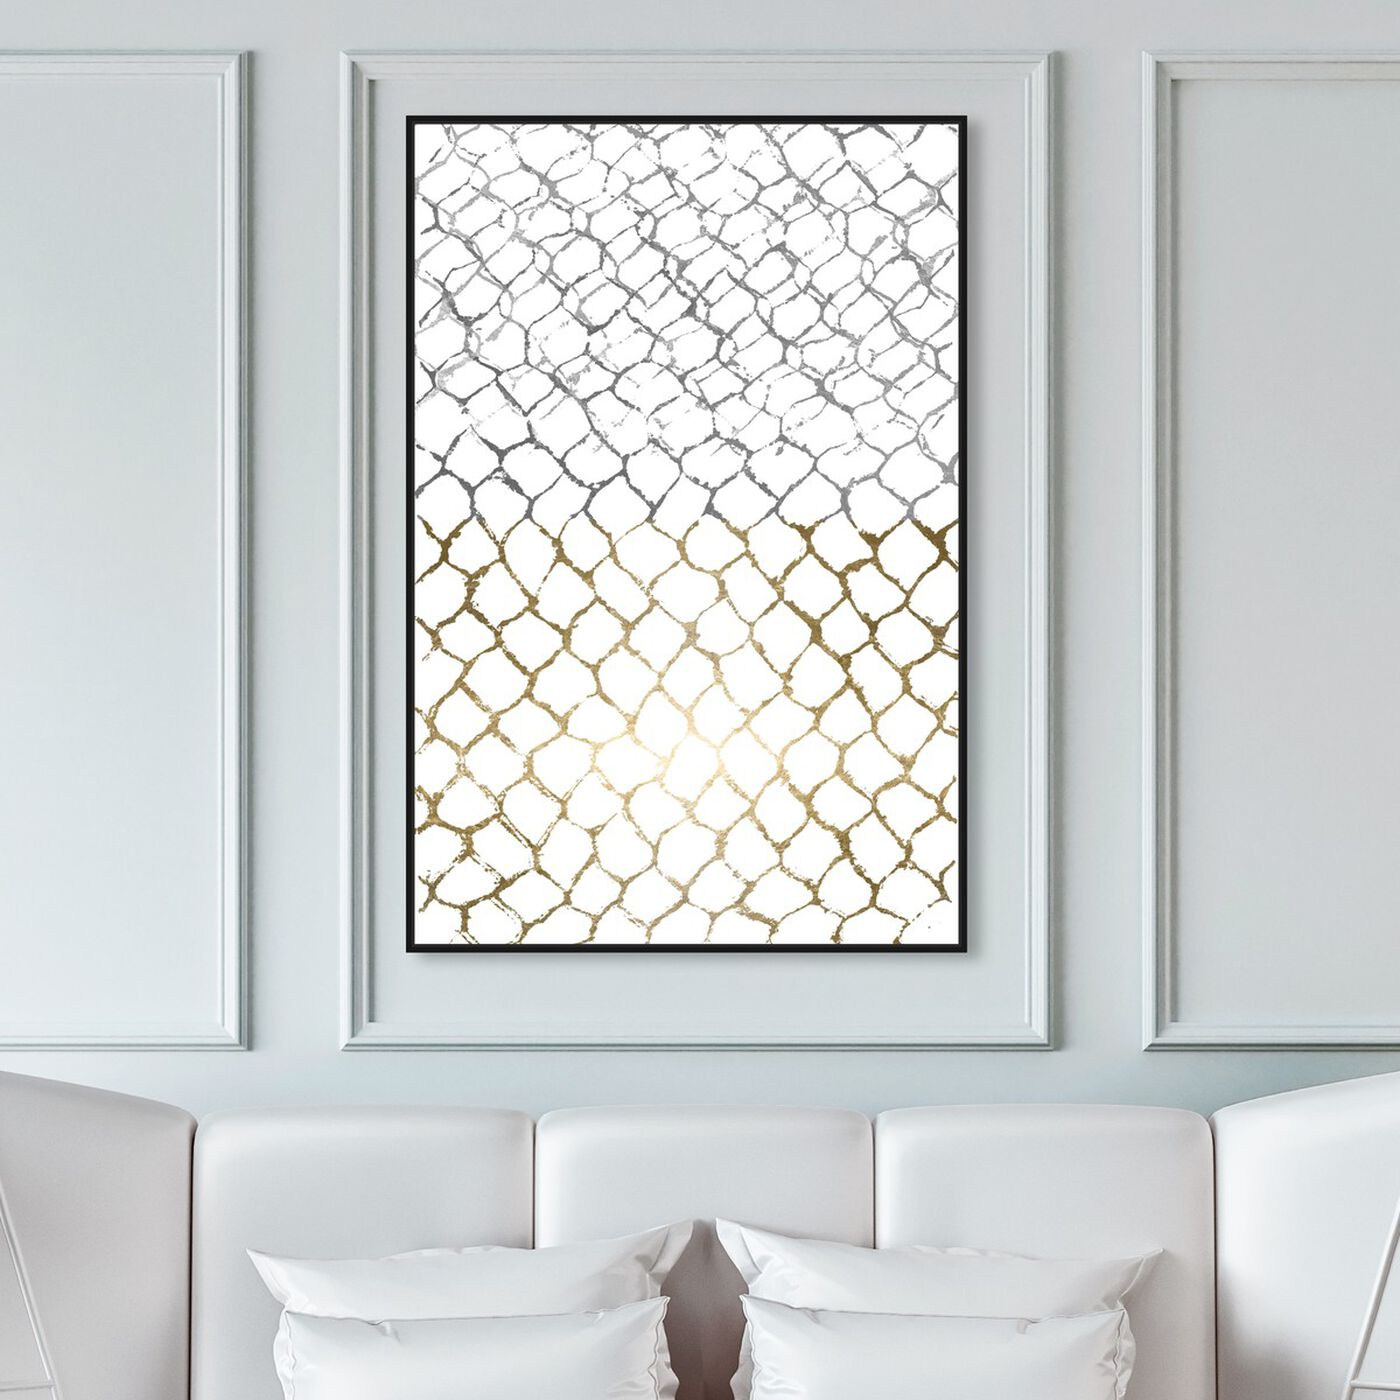 Hanging view of Organic Net featuring abstract and geometric art.